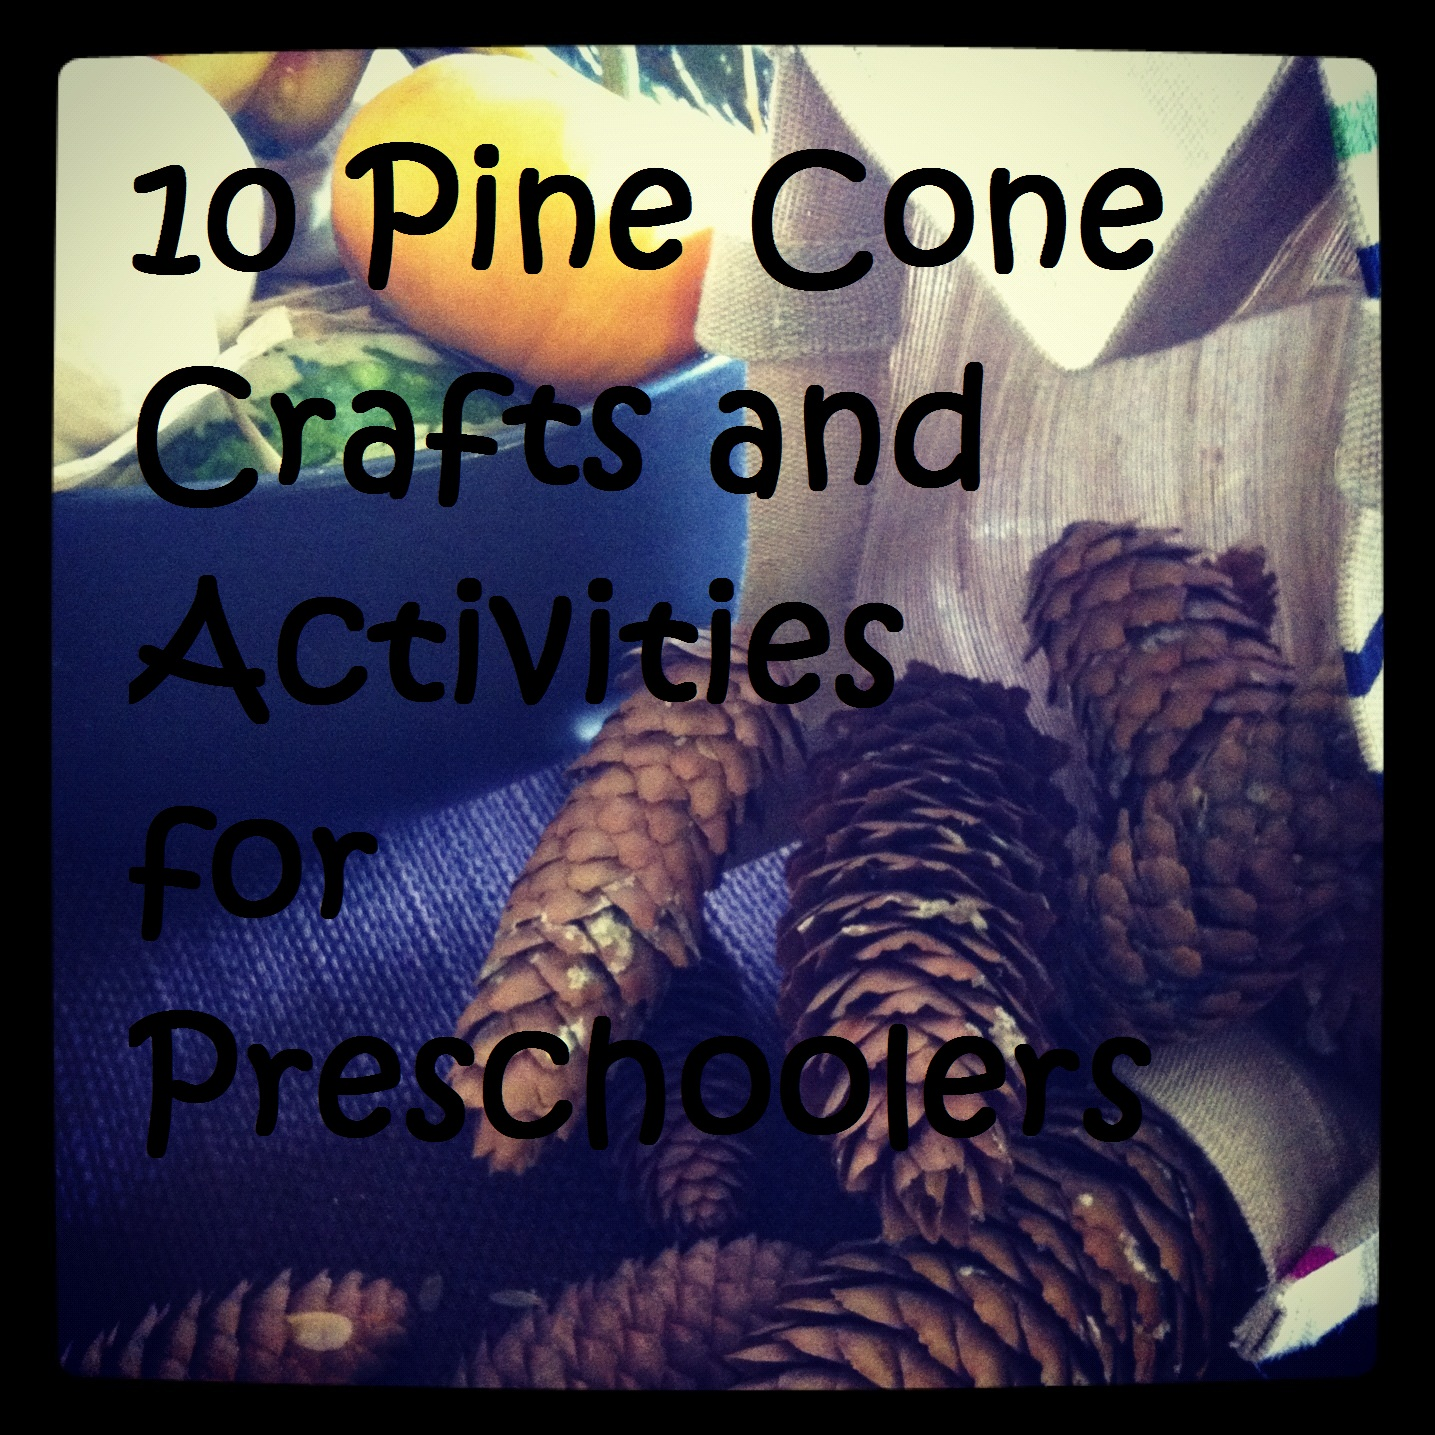 Handmade By Cj Pine Cone Crafts And Activities For Preschoolers